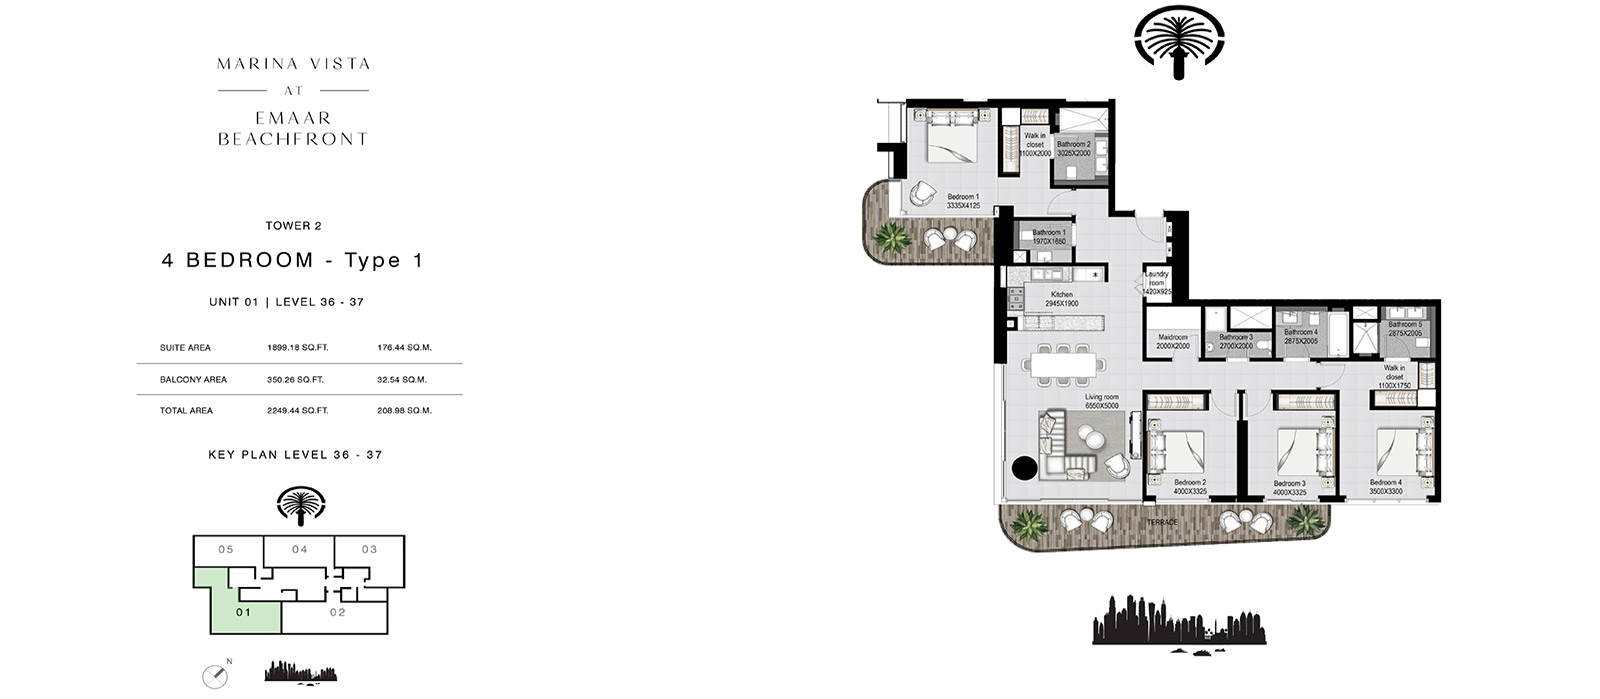 4 Bedroom Tower 2, Type 1, Size 2249.44 sq.ft.